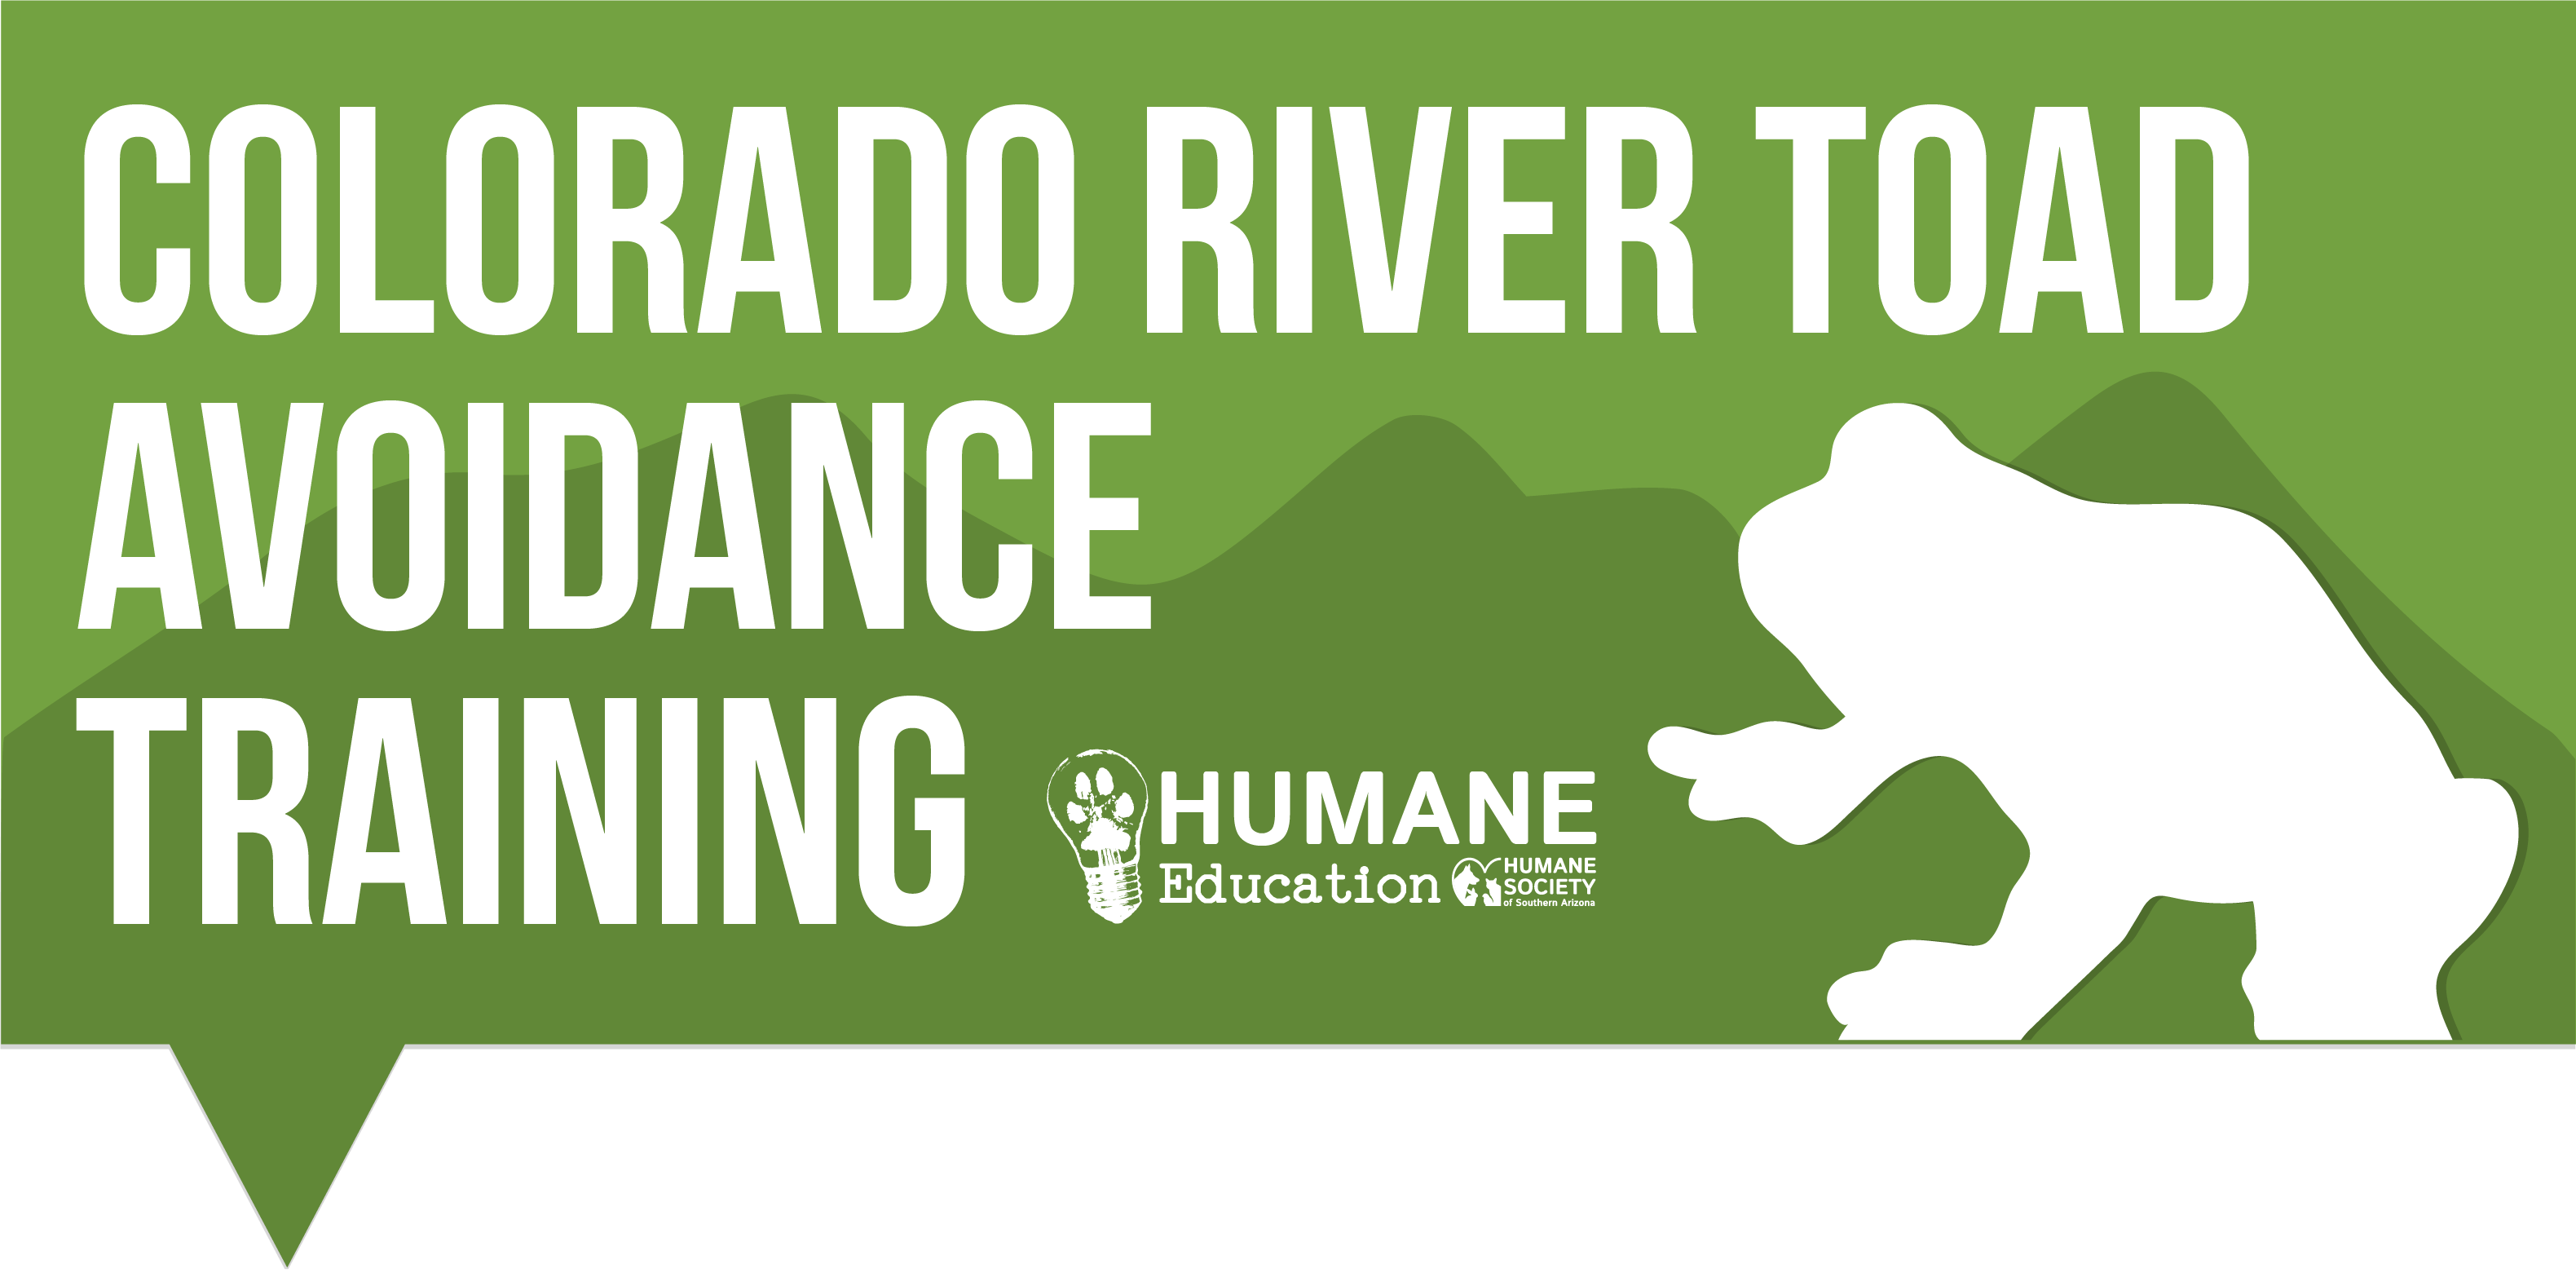 Colorado River Toad Avoidance Training Logo- horizontal